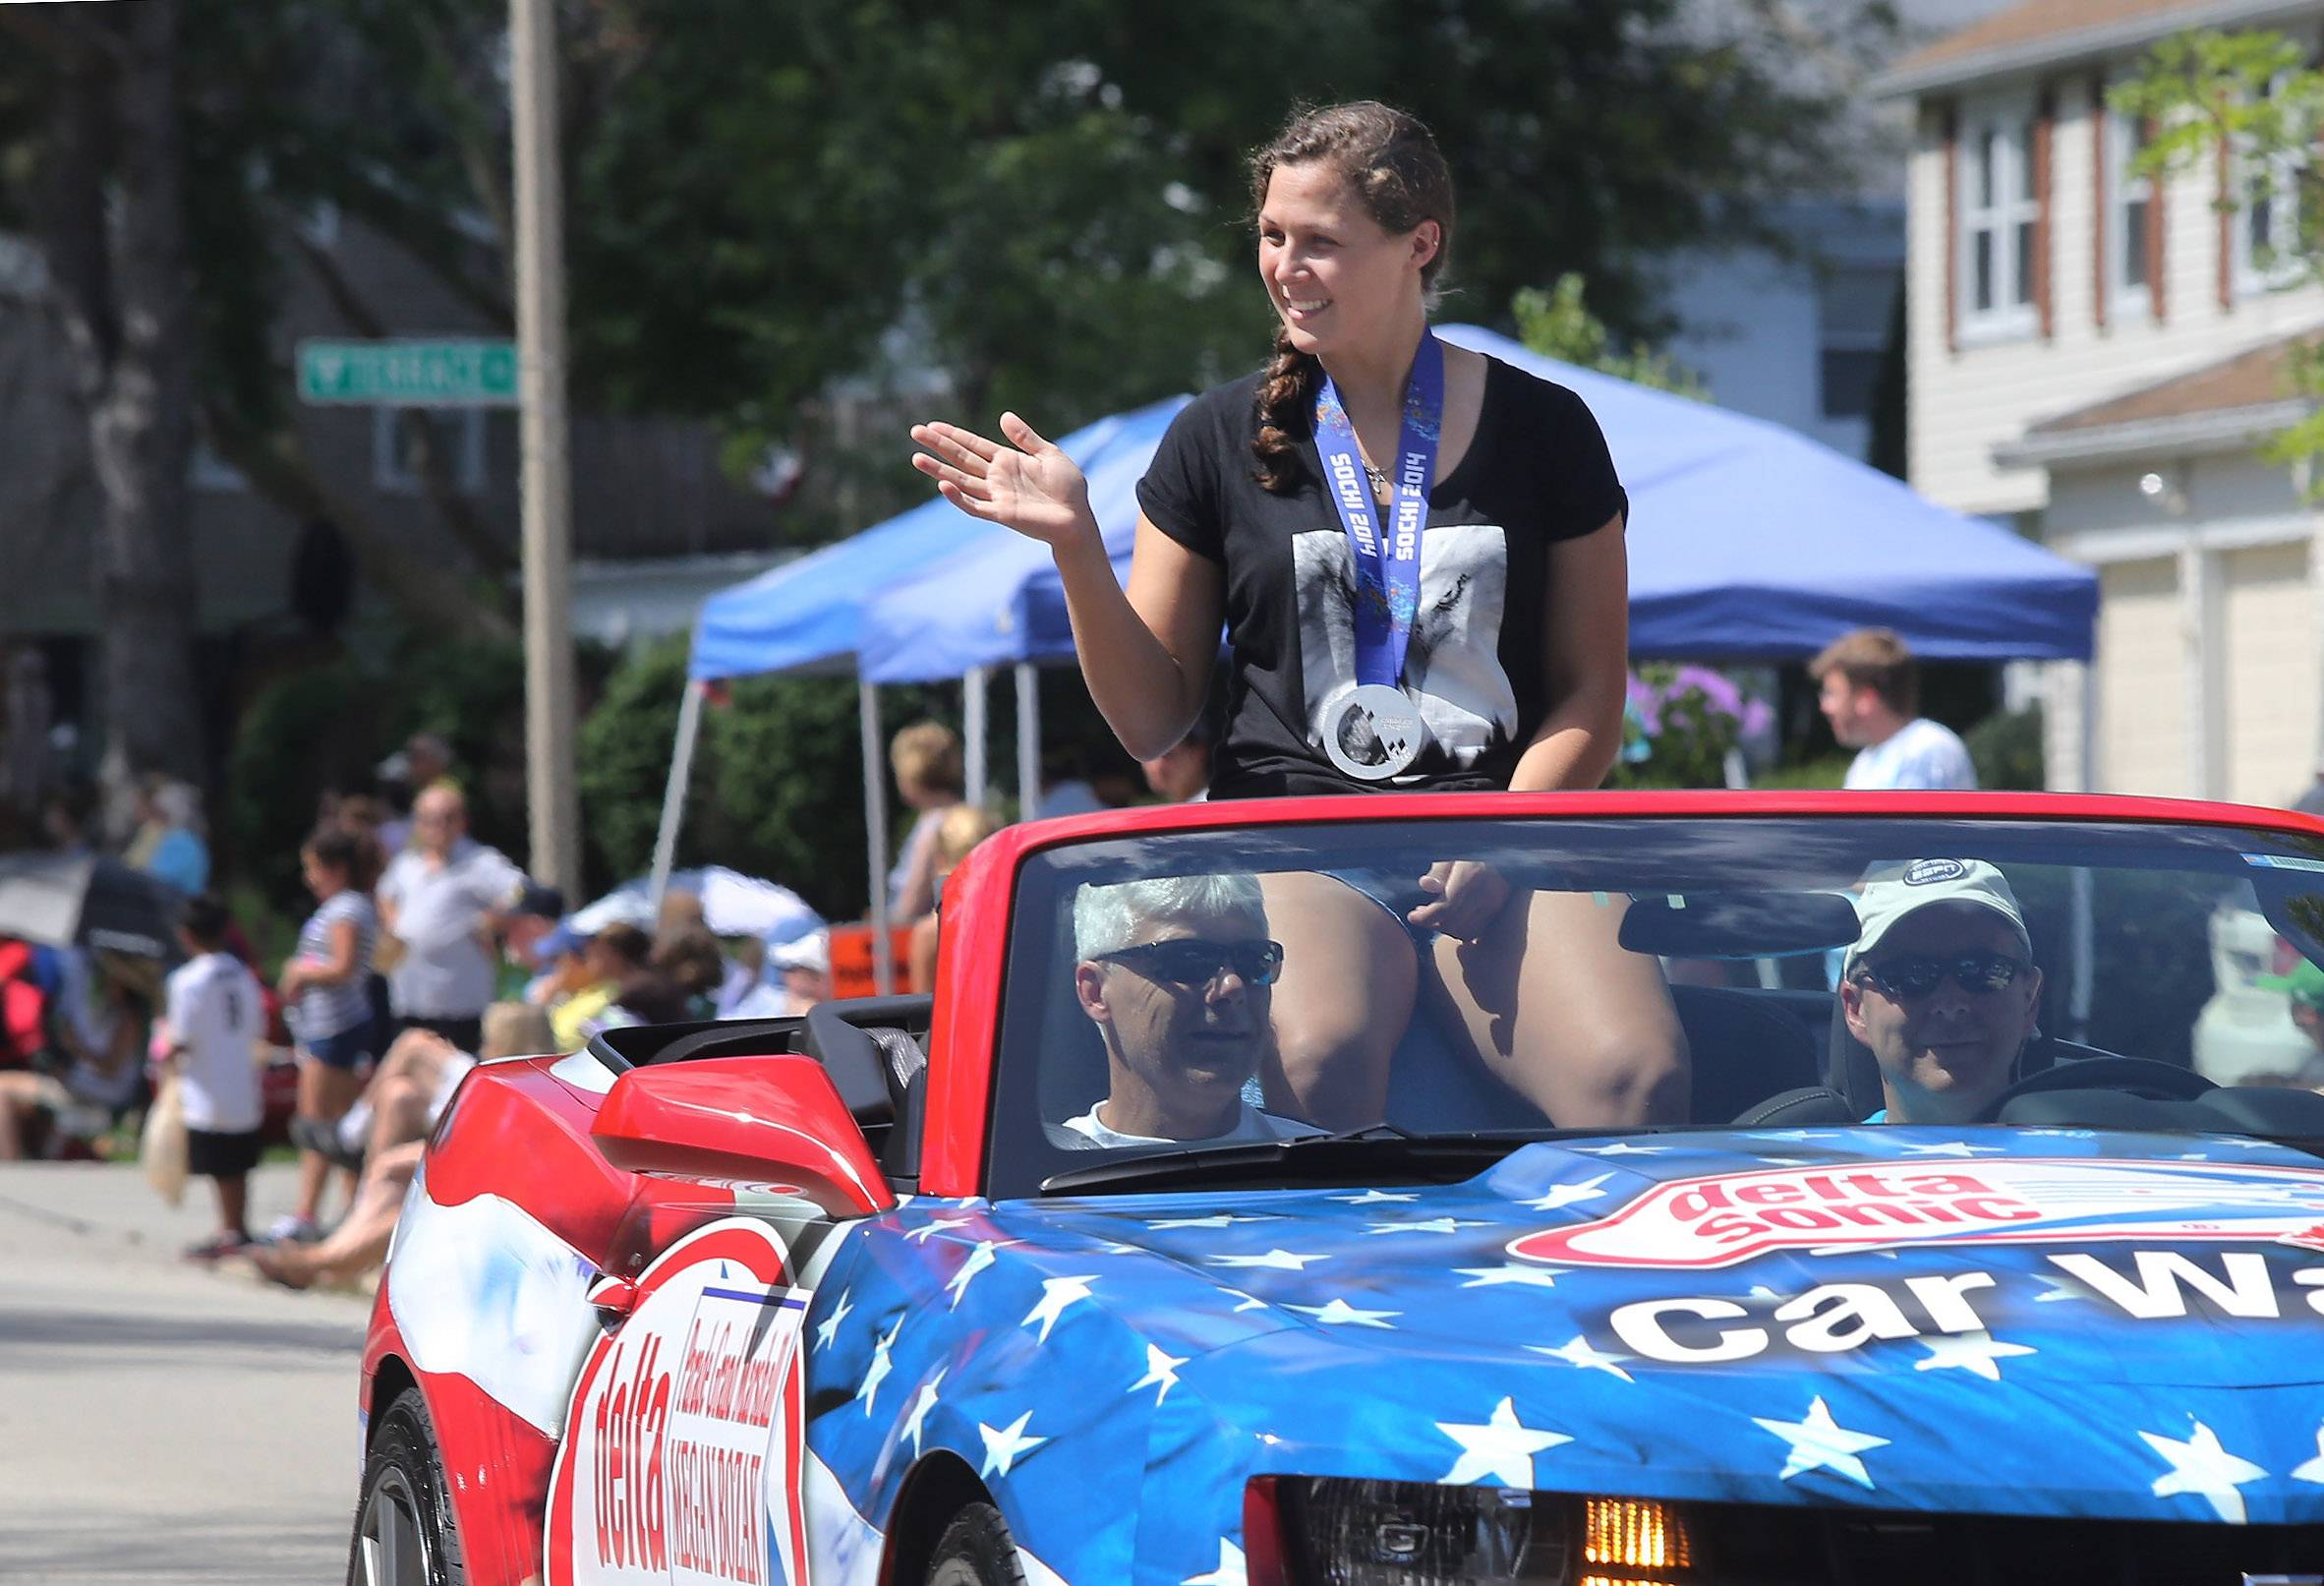 Olympic silver medalist Megan Bozek waves to the crowd Sunday during the Buffalo Grove Days parade along Bernard Drive. The U.S. women's ice hockey player was this year's grand marshal in what organizers say was the largest ever Buffalo Grove Days parade..